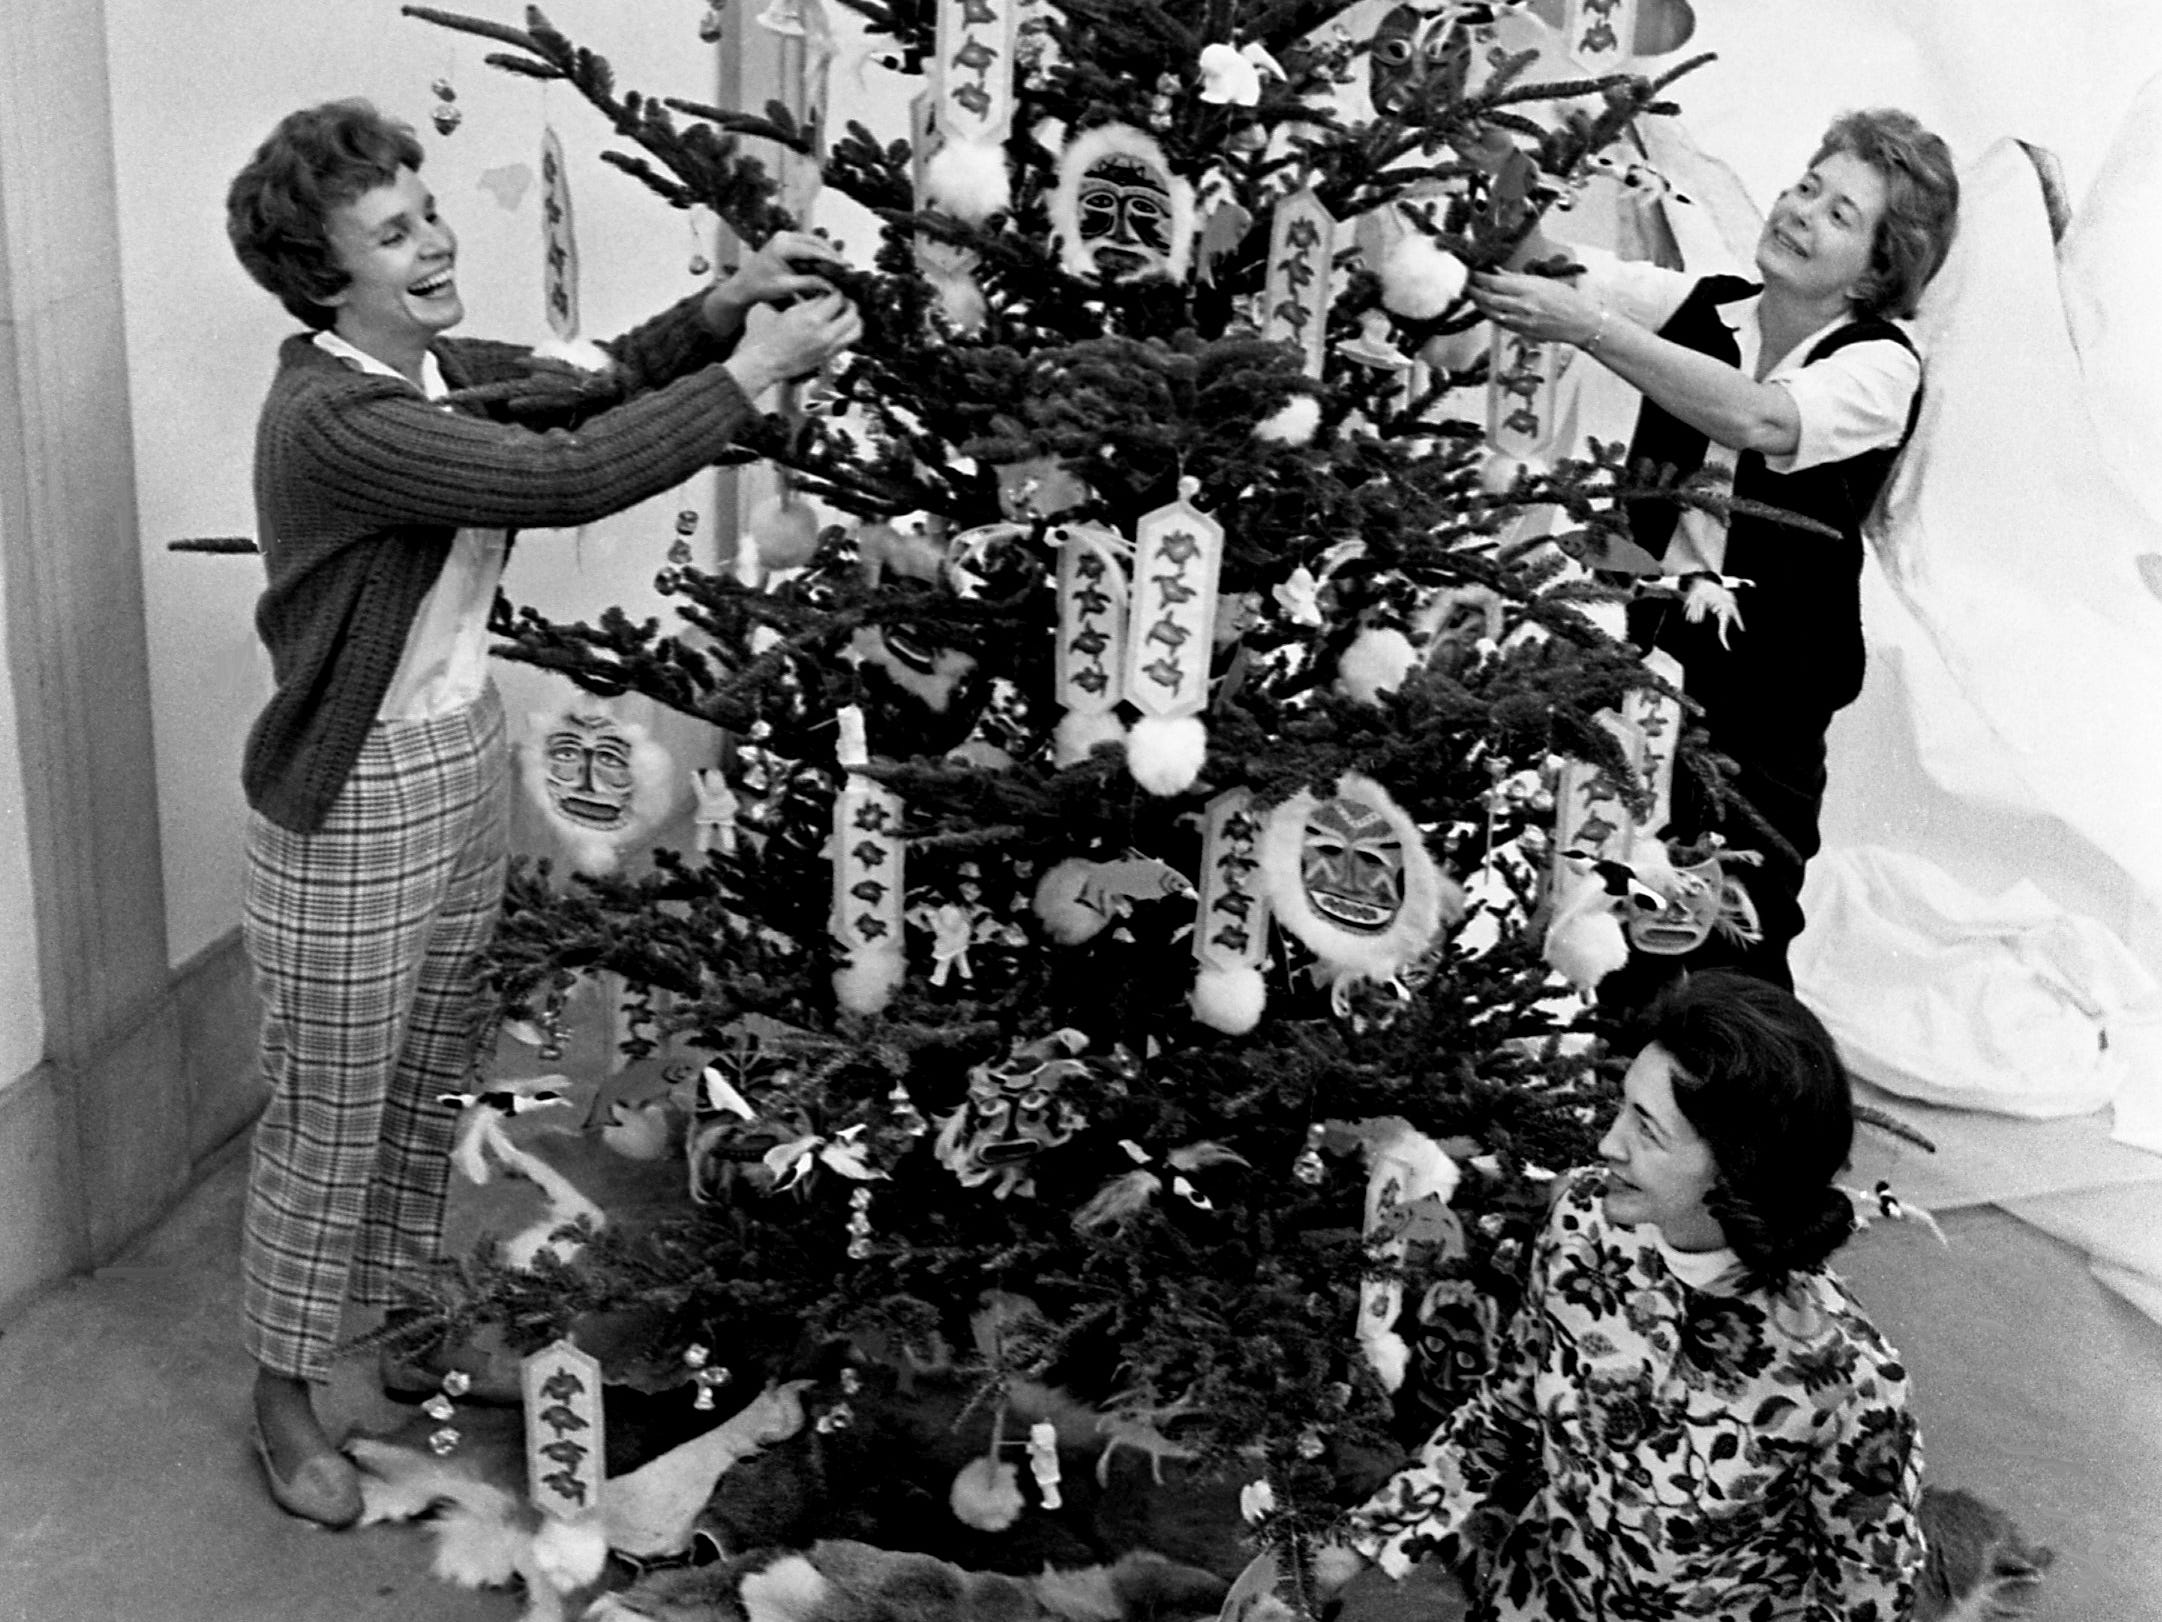 Members of the Green Hills Garden Club are putting the finishing touches Dec. 3, 1968 to the Alaskan tree, one of the seven new trees for the upcoming 4th annual Christmas at Cheekwood event. They are Mrs. Bob Mason, left, Mrs. Charles Gaw and Mrs. Harold West.